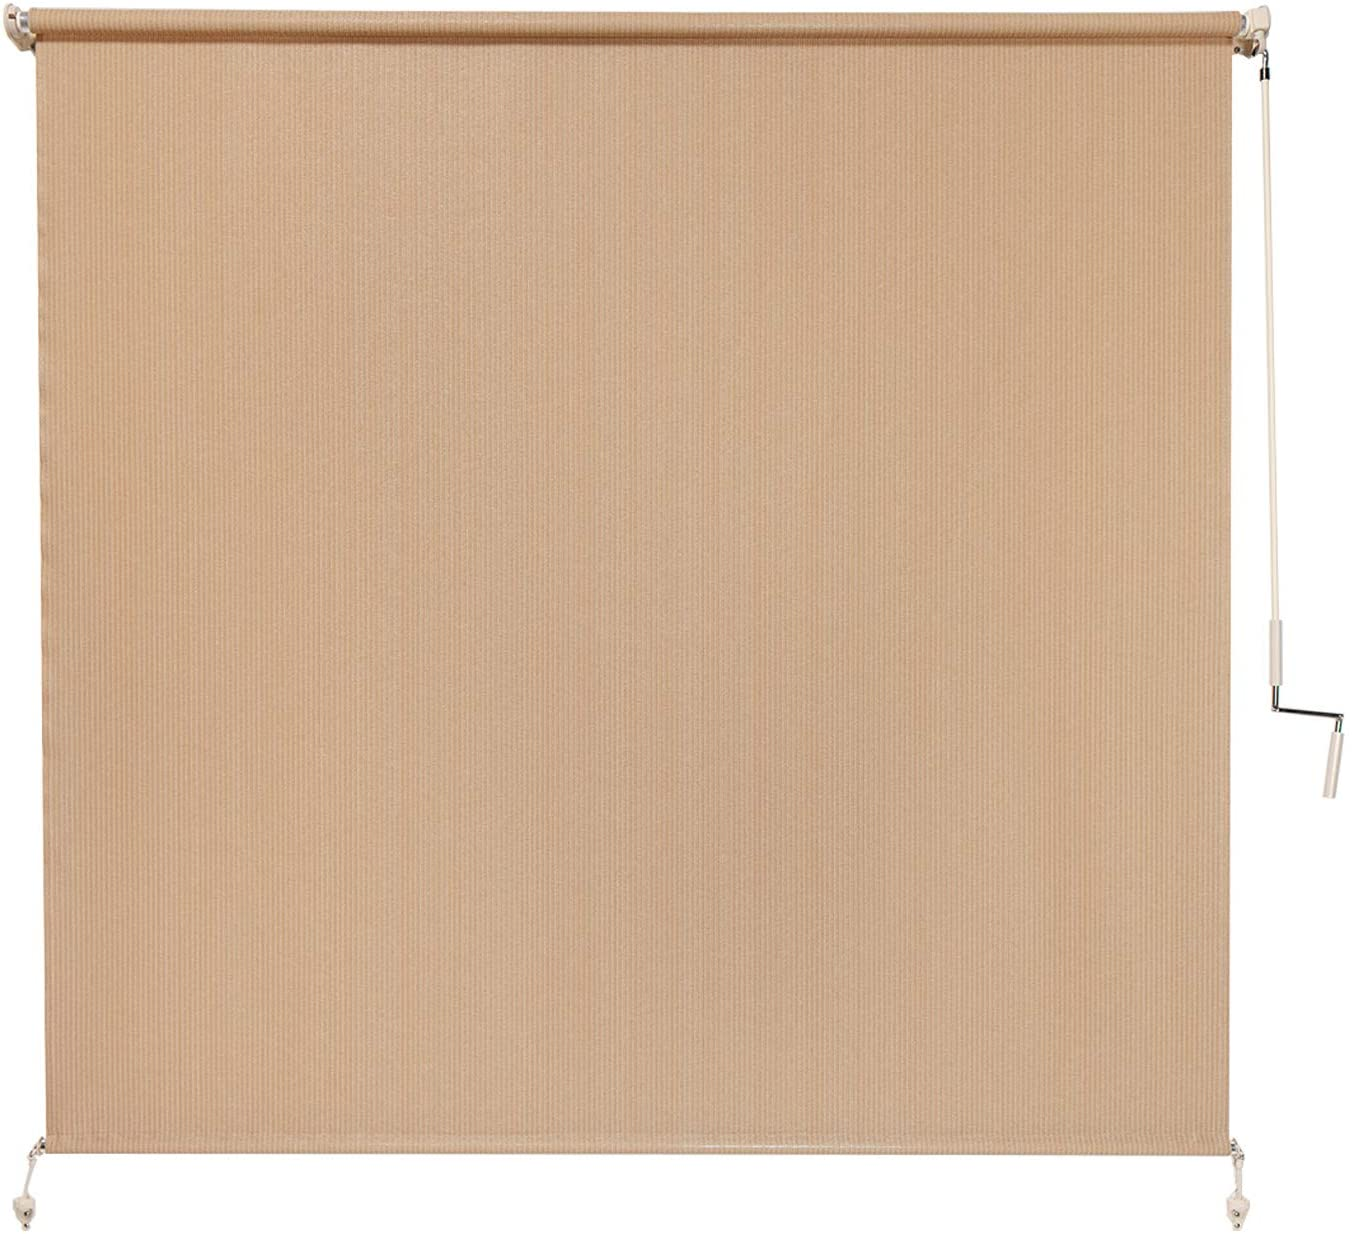 Coolaroo Exterior Roller Shade, Cordless Roller Shade with 80% UV Protection, No Valance, (6' W X 6' L), Almond